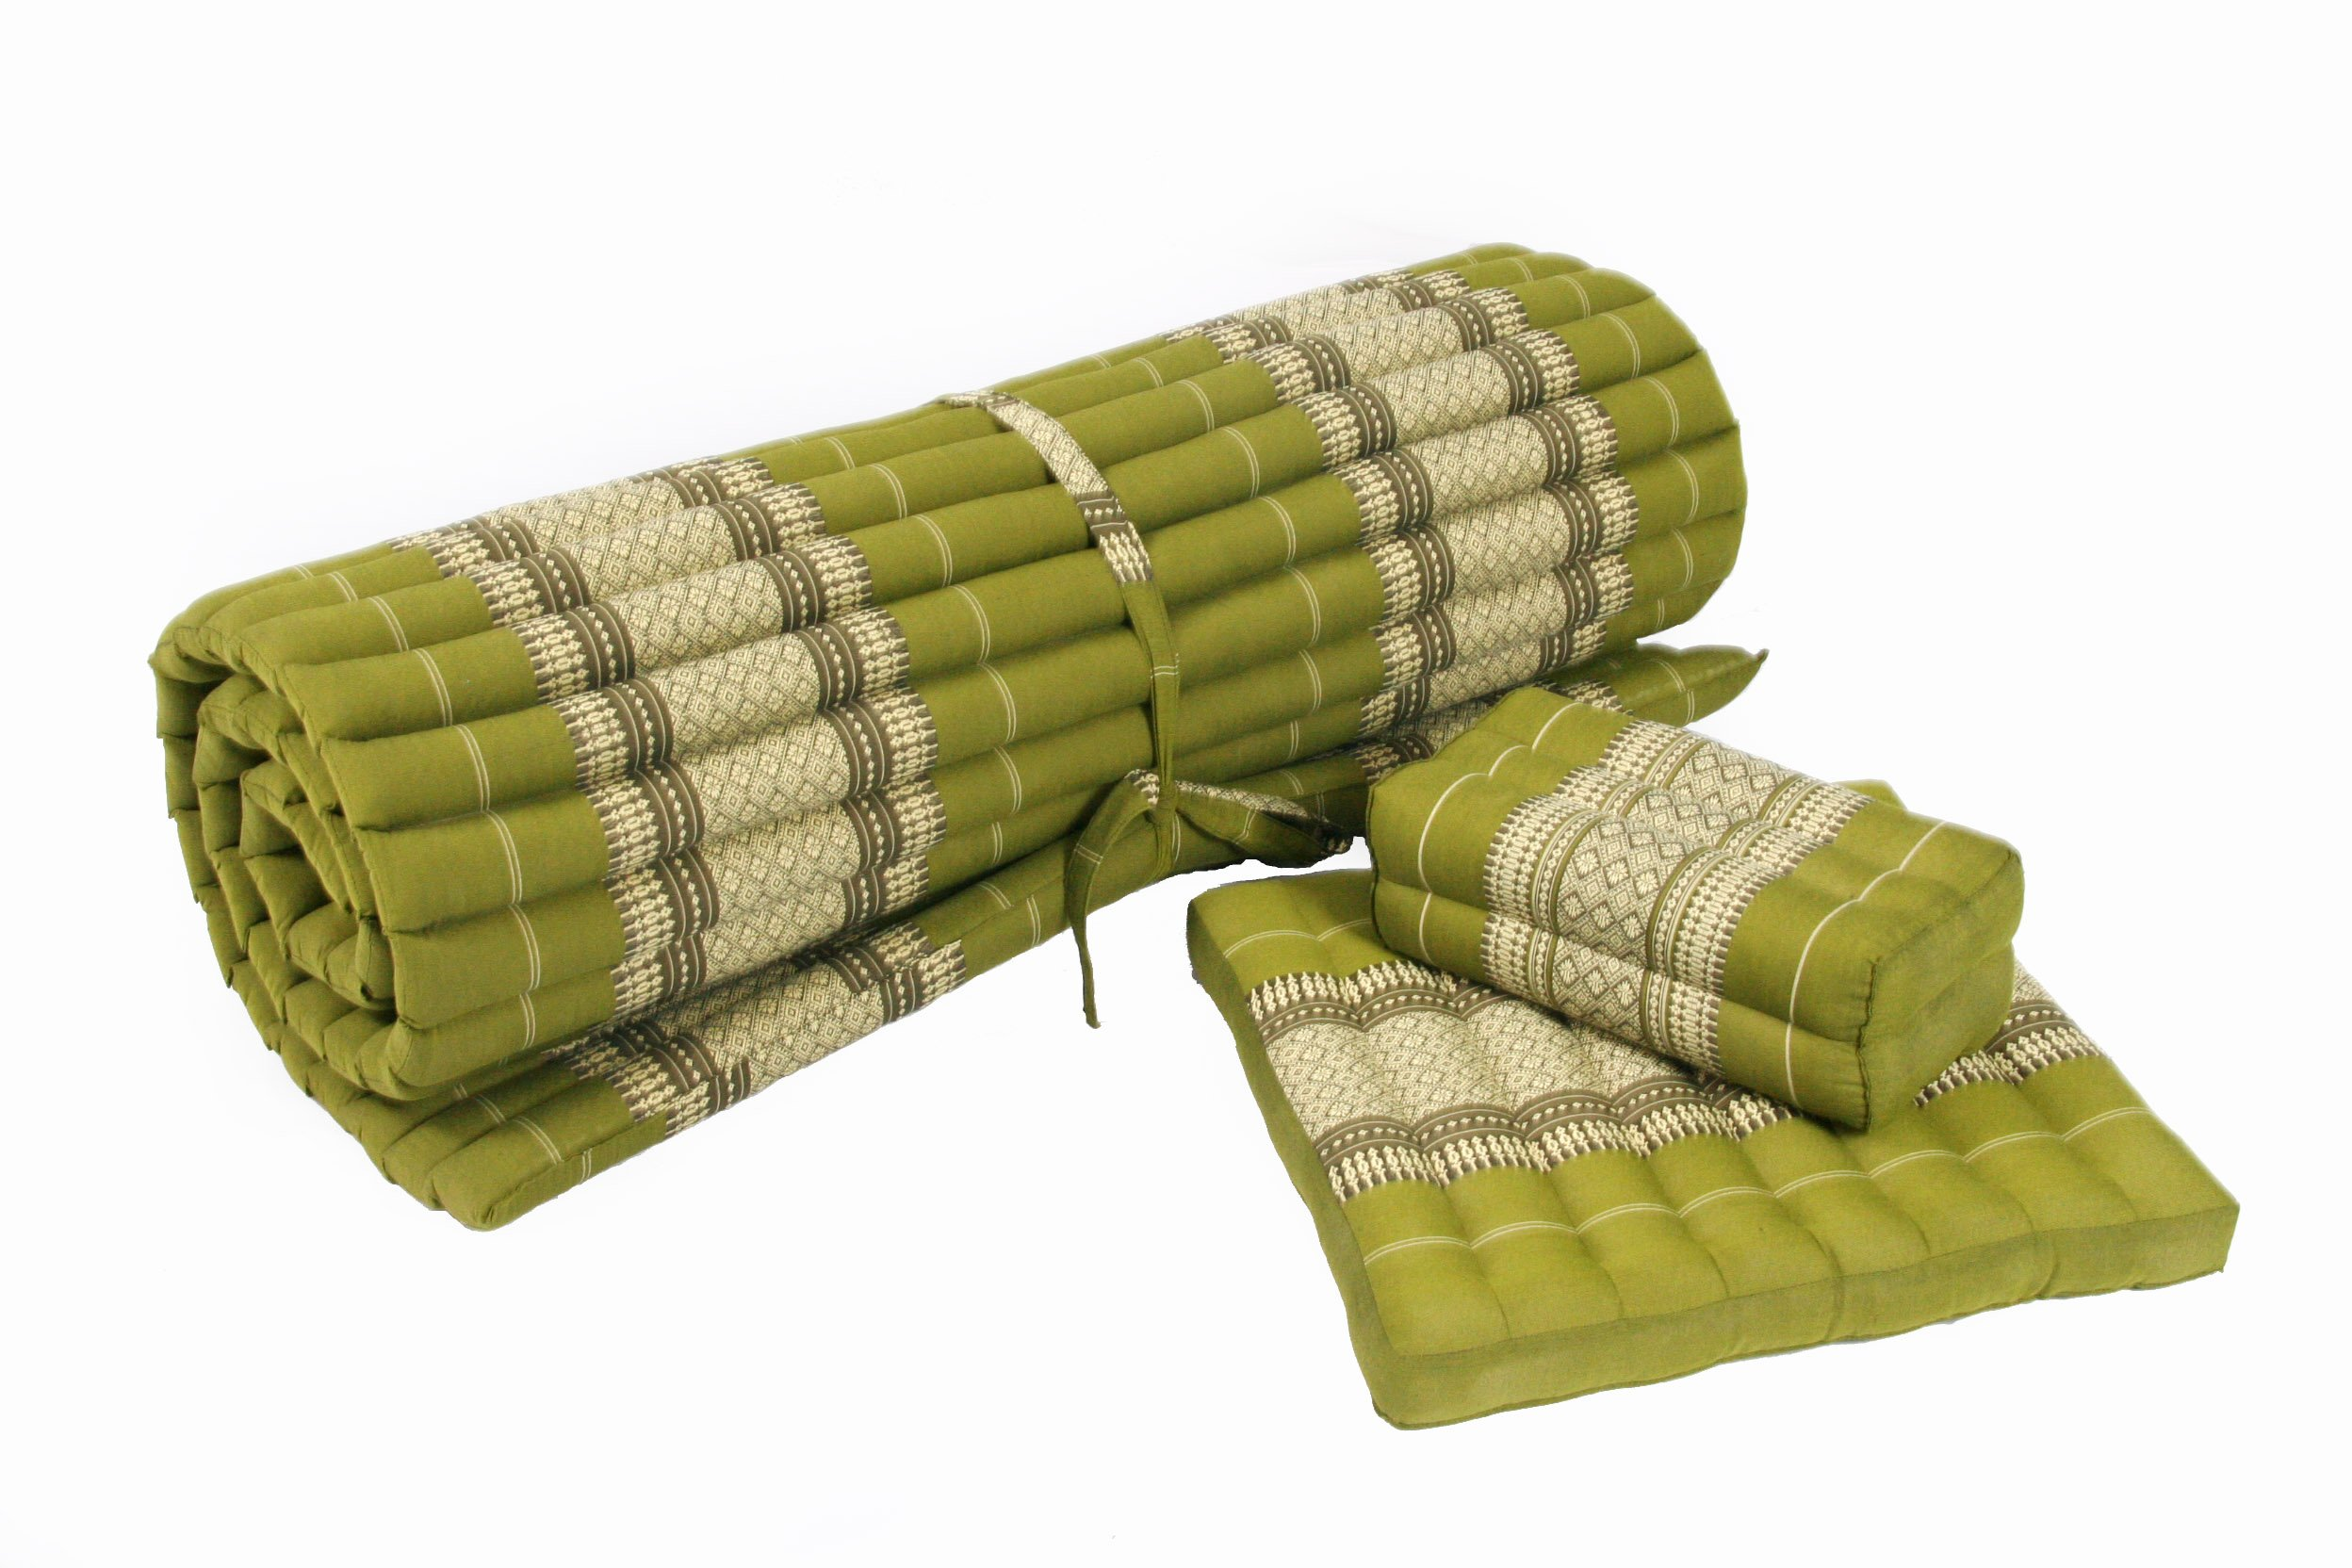 Yogaset I: Rollmat + 2 Cushions, all filled with 100% natural Kapok, Thai traditional Design Bamboogreen